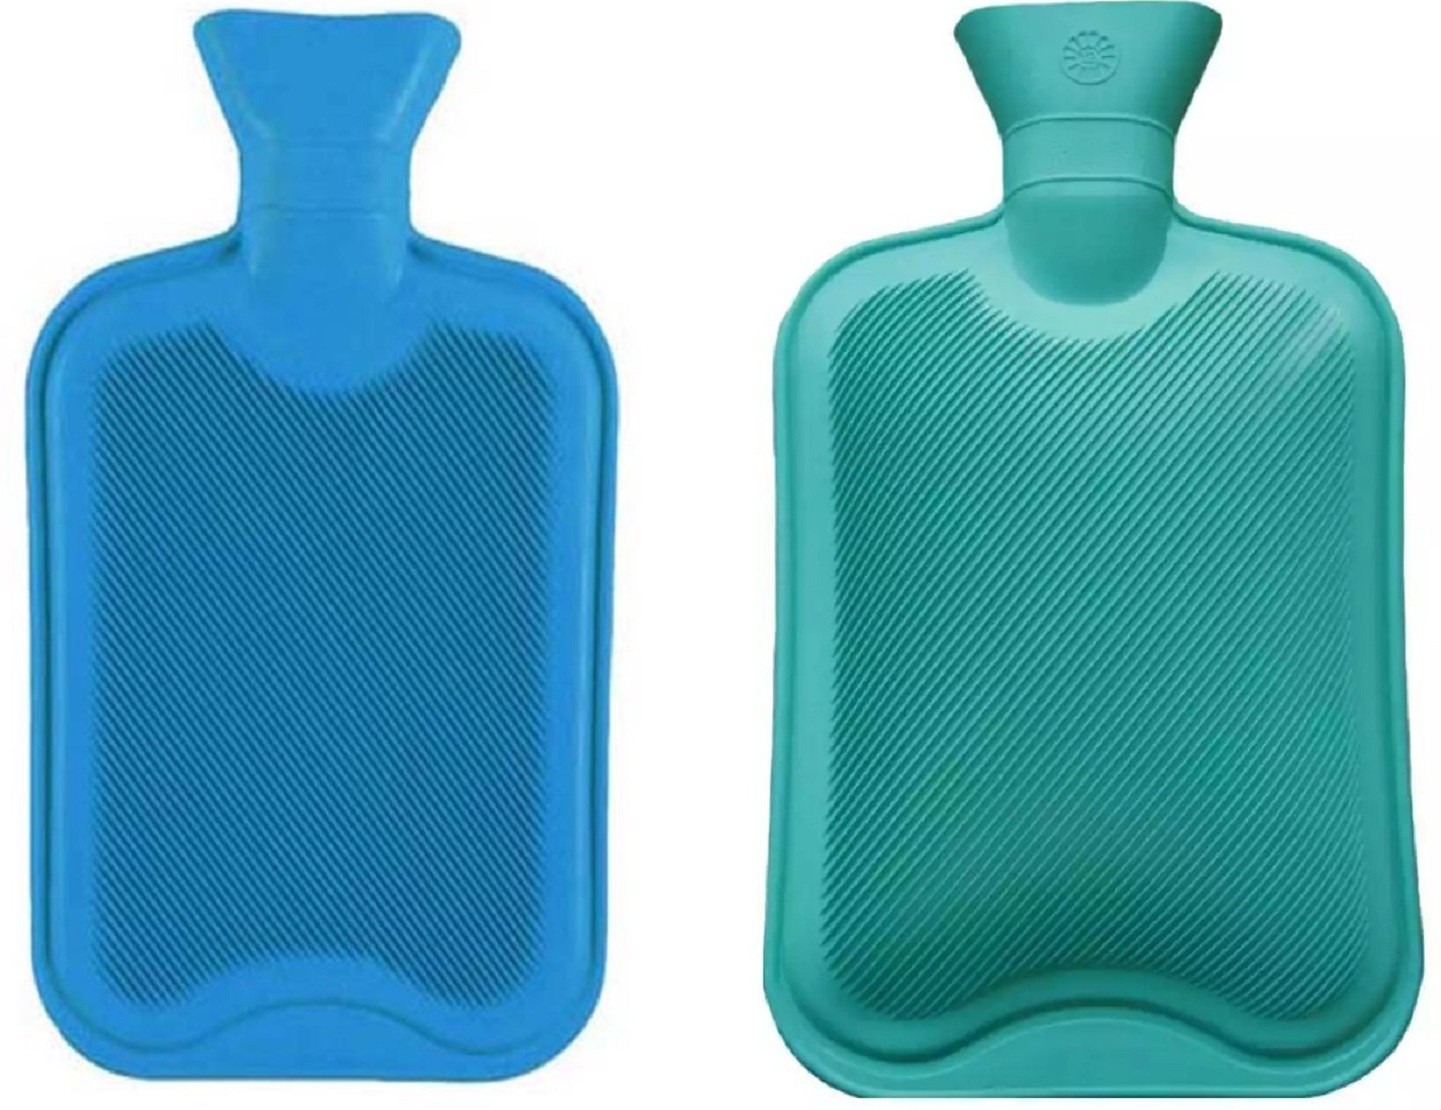 Rozols Combo Deluxe Non-electrical 3 L Hot Water Bag(Blue, Green)